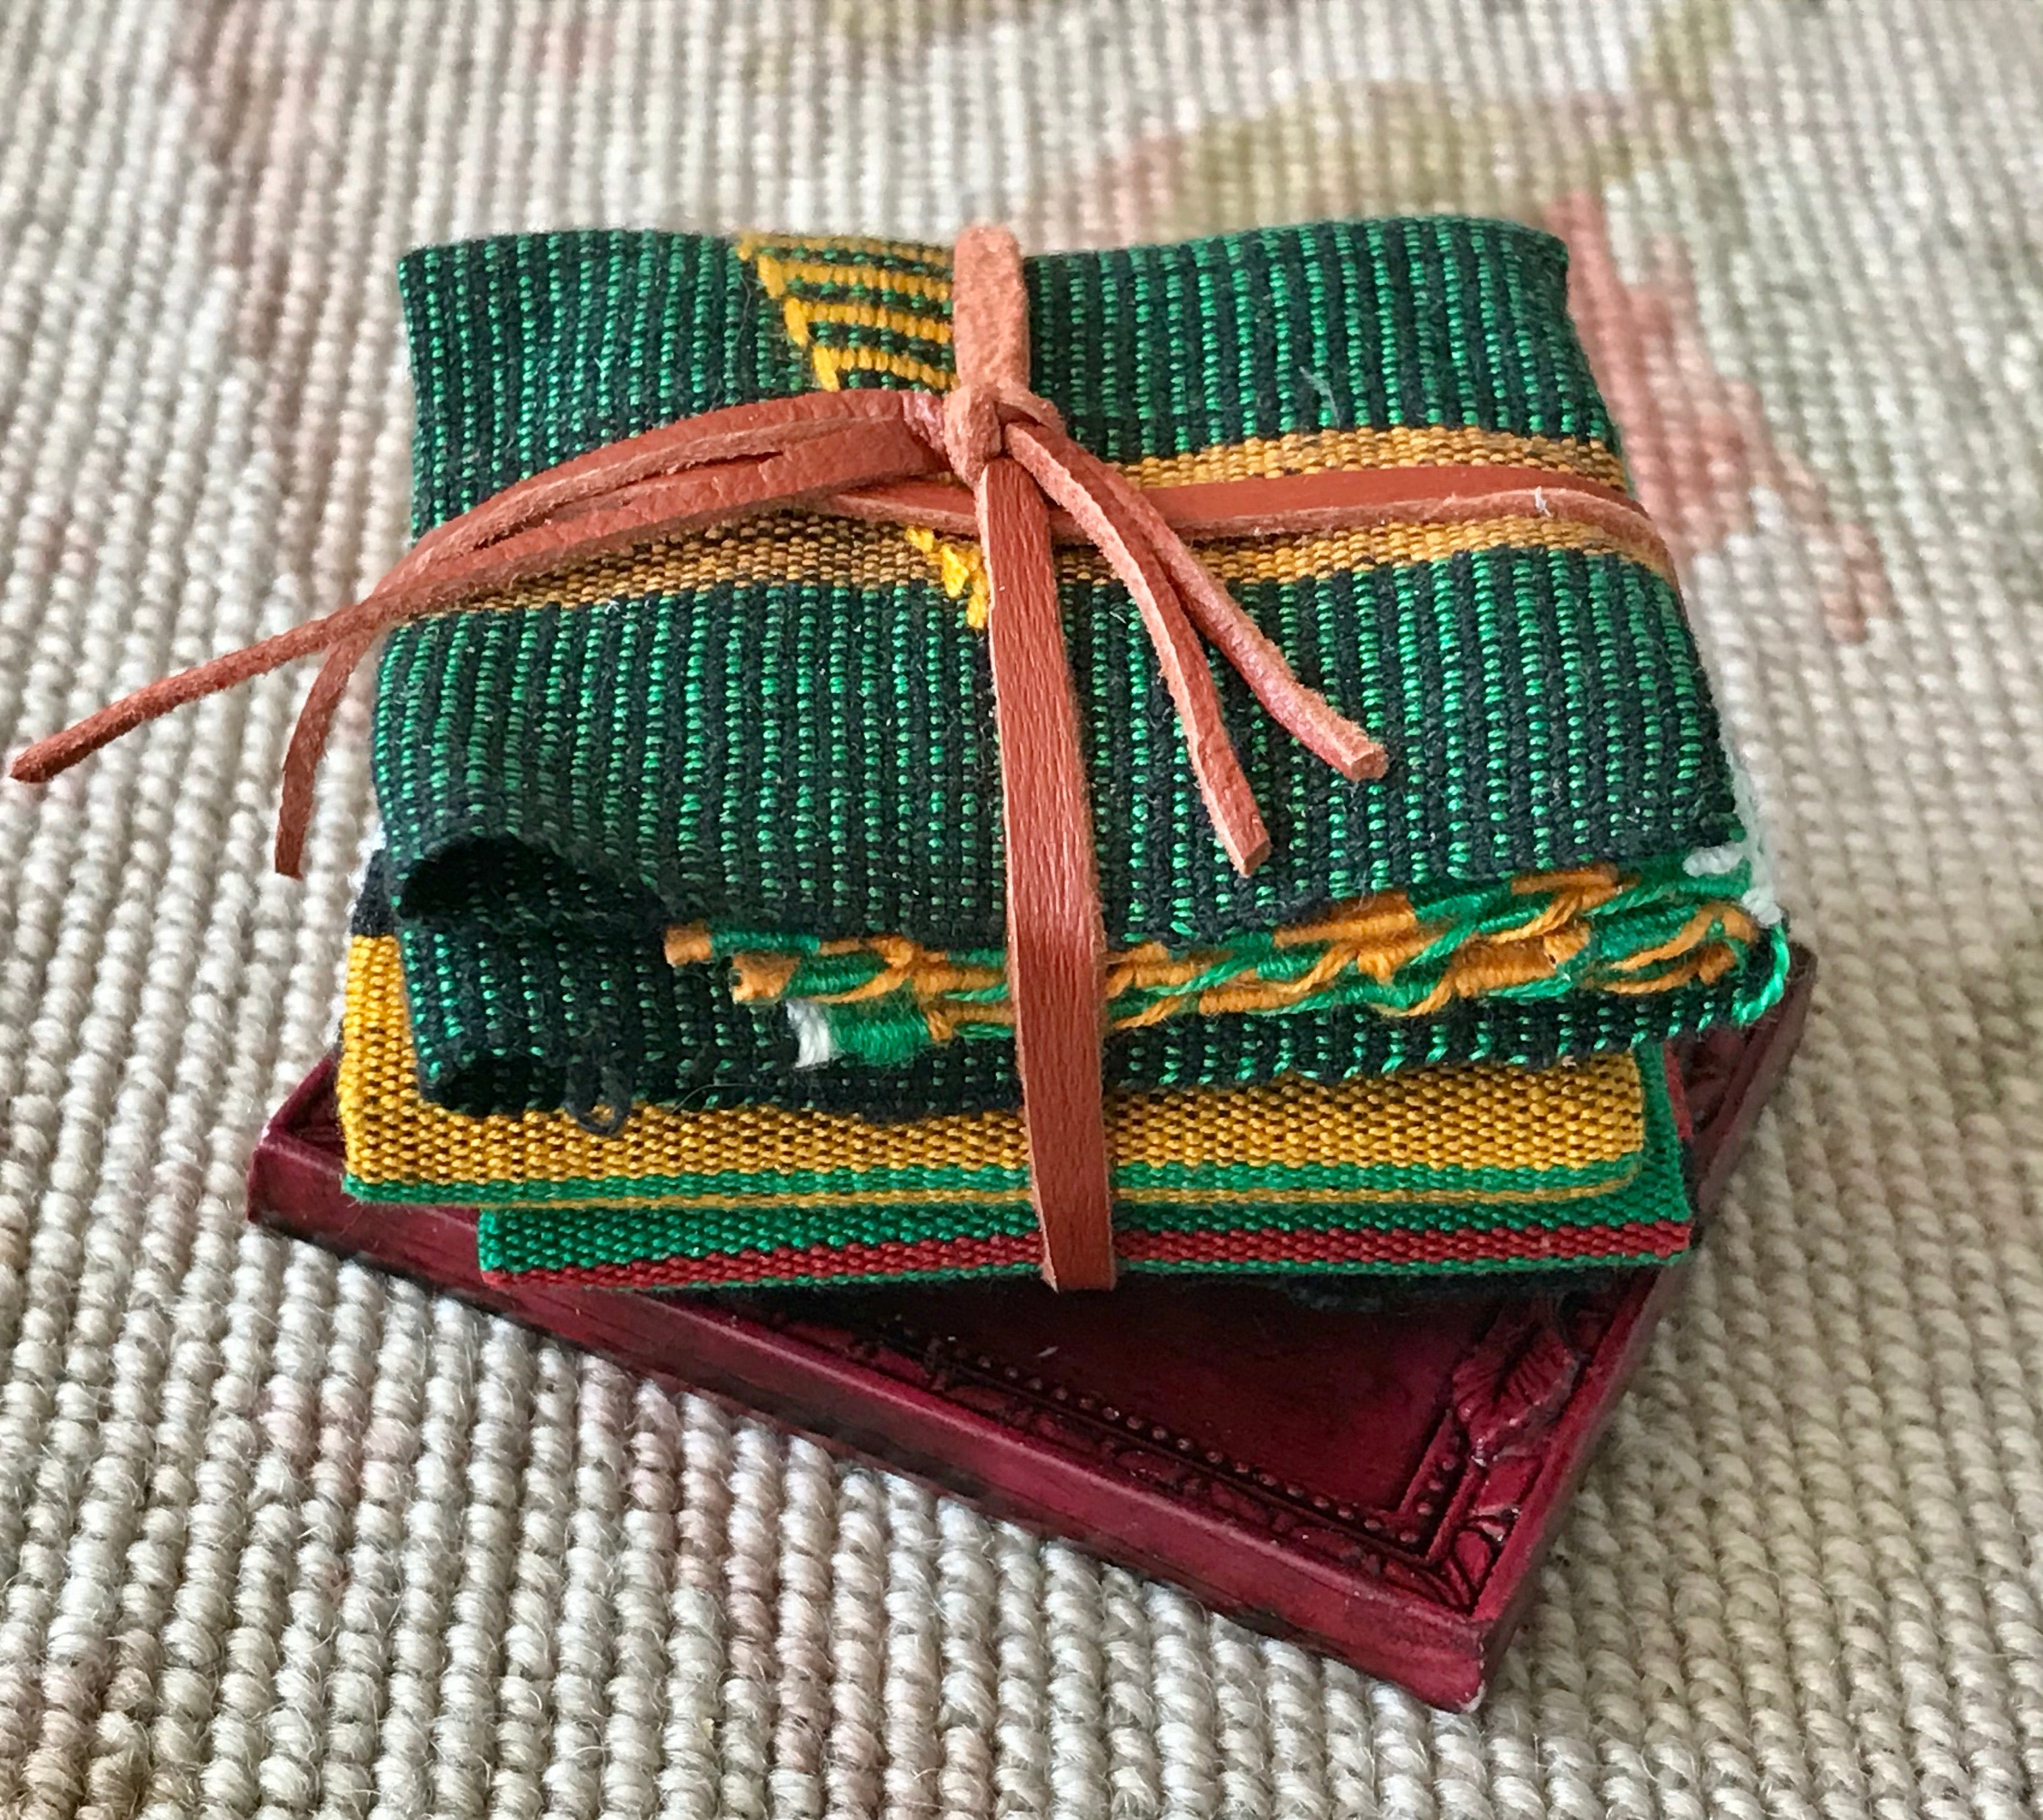 Tray Dressed With African Cloth Blankets 1:12 Dollhouse Miniature